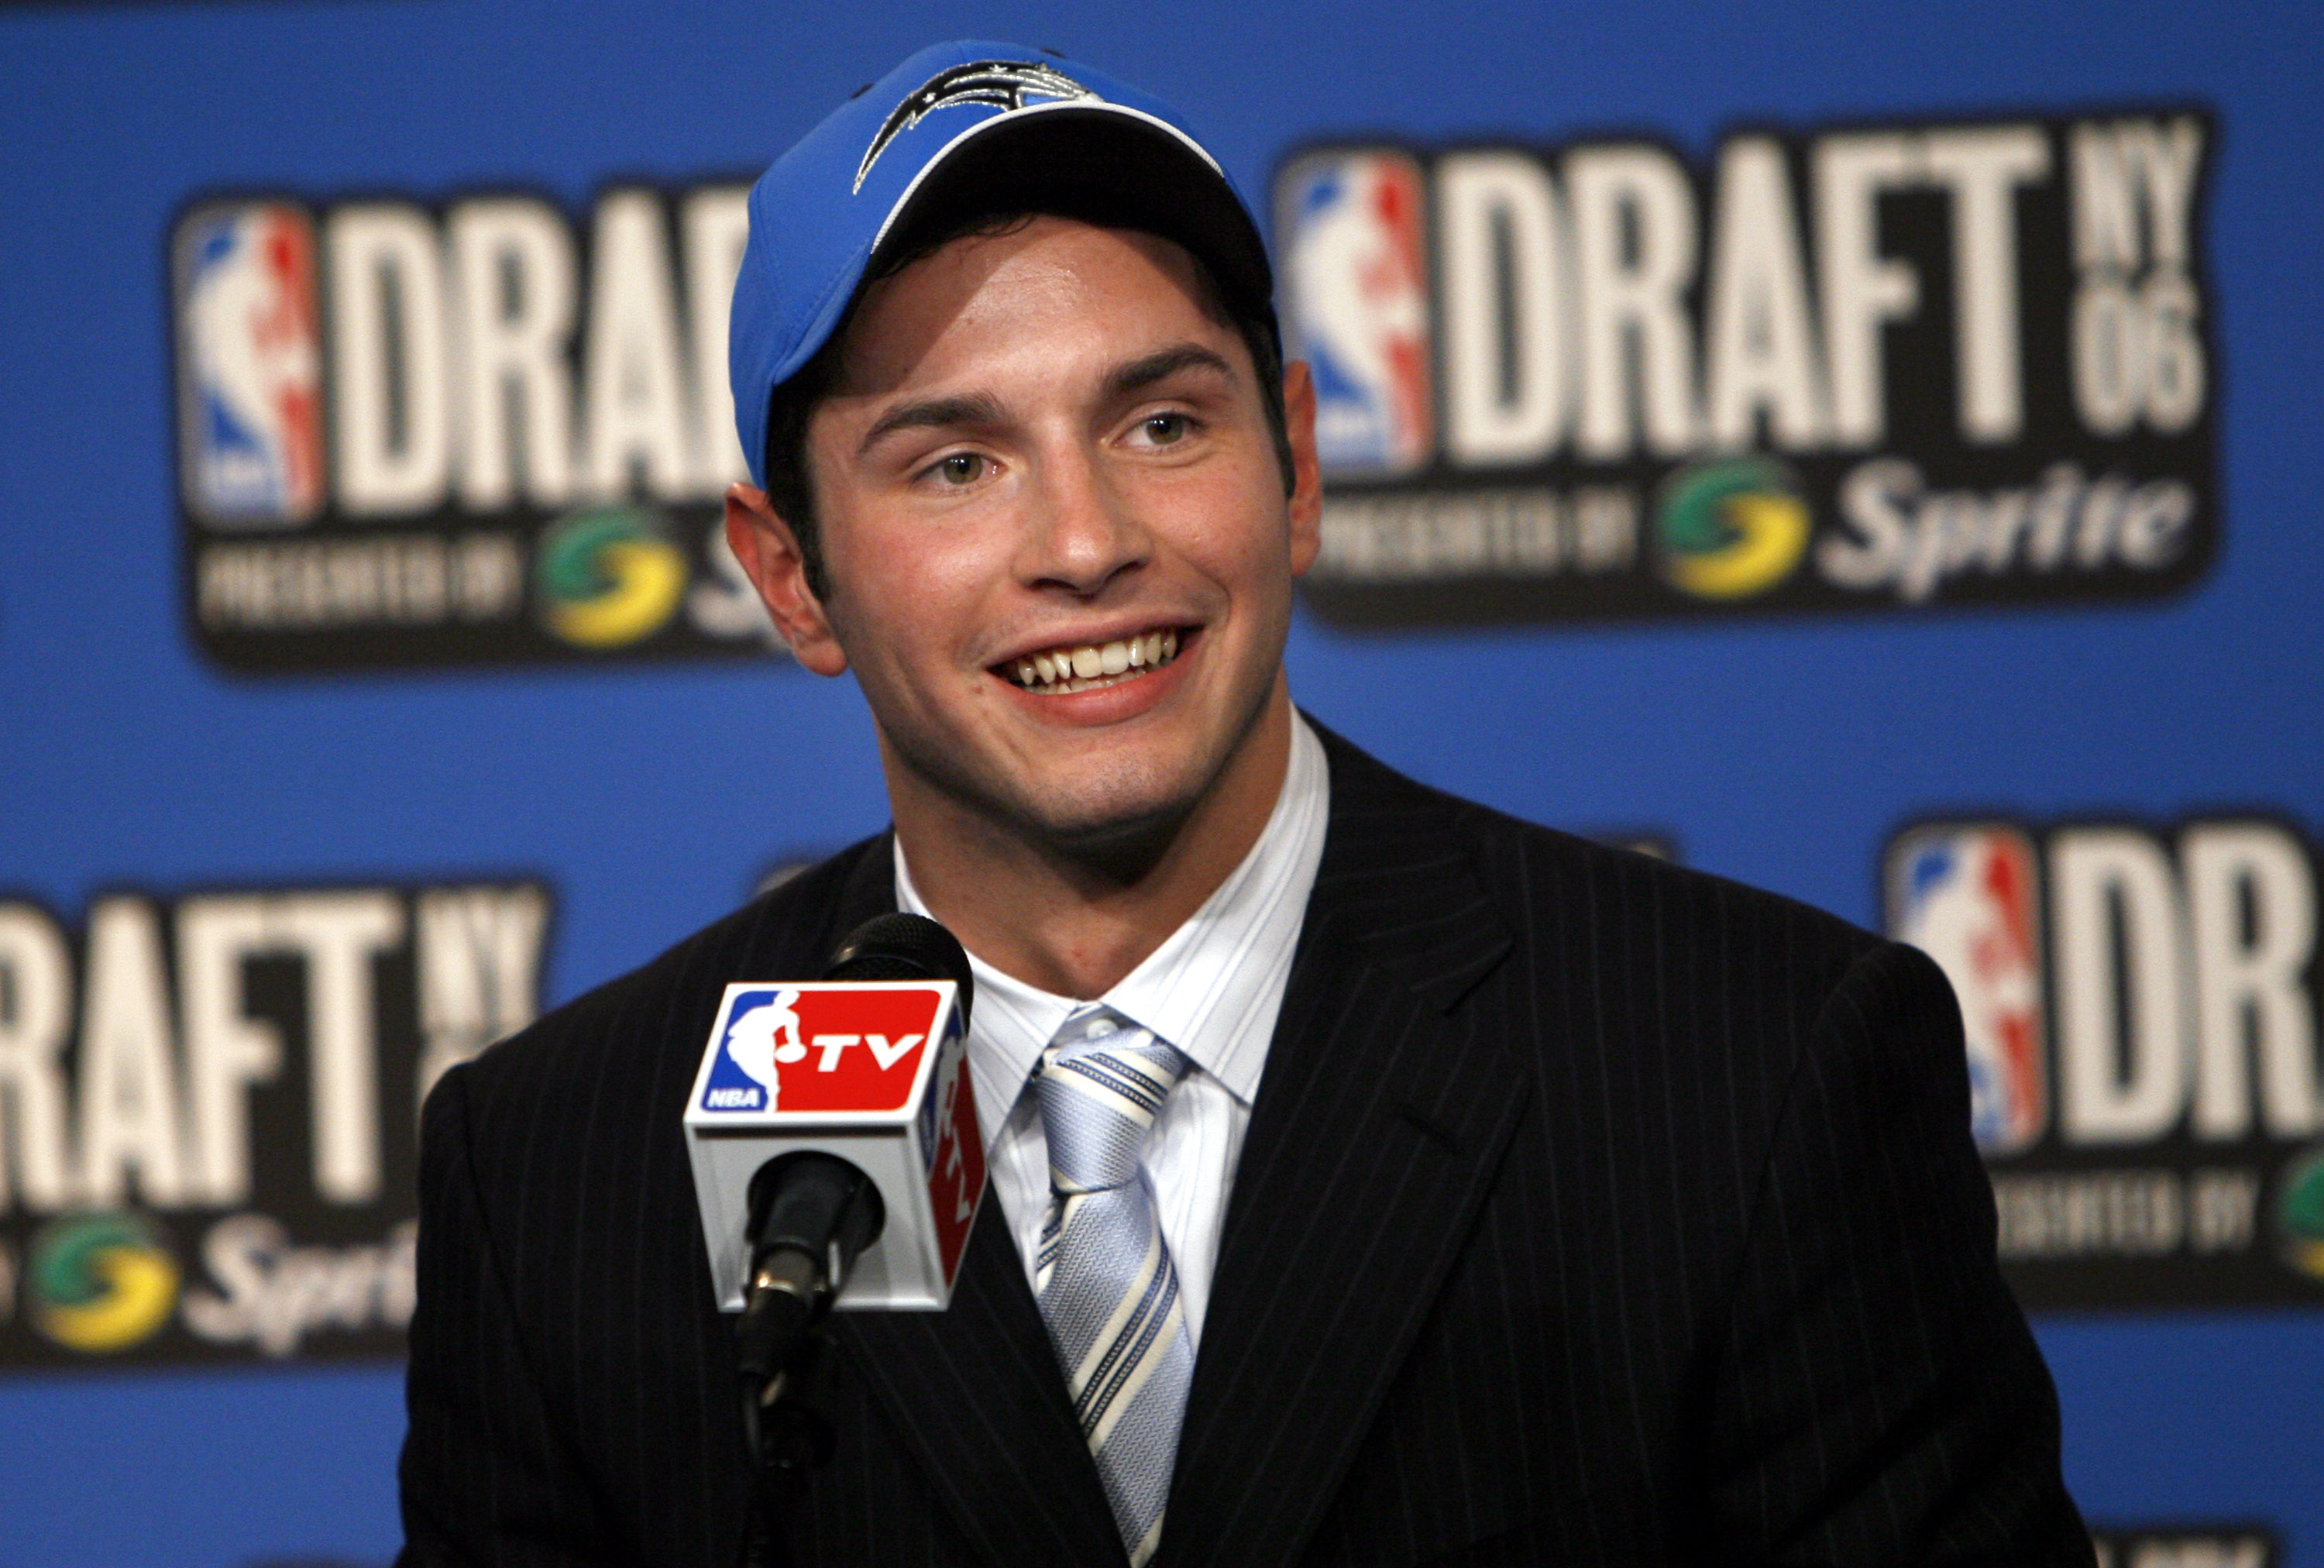 J.J. Redick, a guard from Duke, speaks to the press after he was chosen by the Orlando Magic as the 11th overall pick of the 2006 NBA Draft Wednesday, June 28, 2006 at Madison Square Garden in New York.